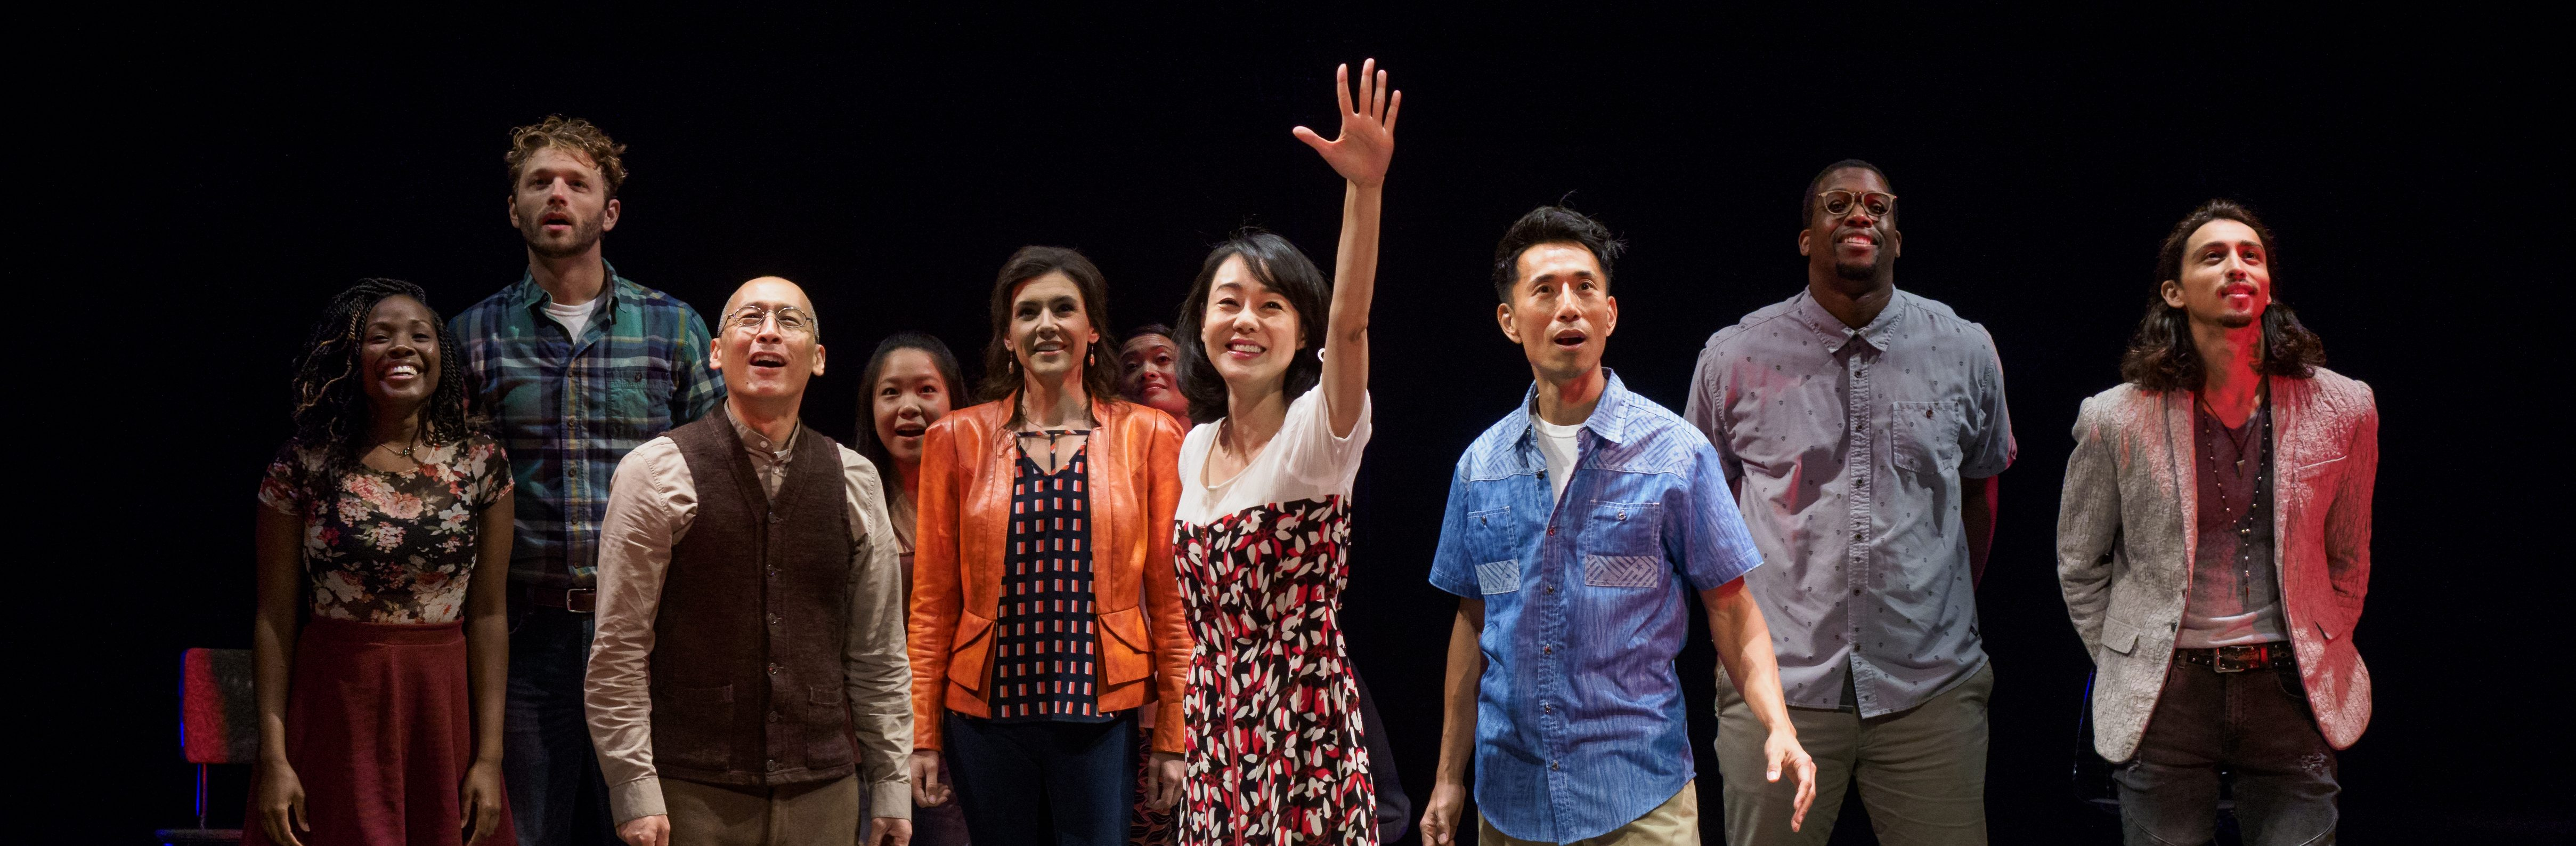 The cast of WILD GOOSE DREAMS at La Jolla Playhouse, photo by Jim Carmody